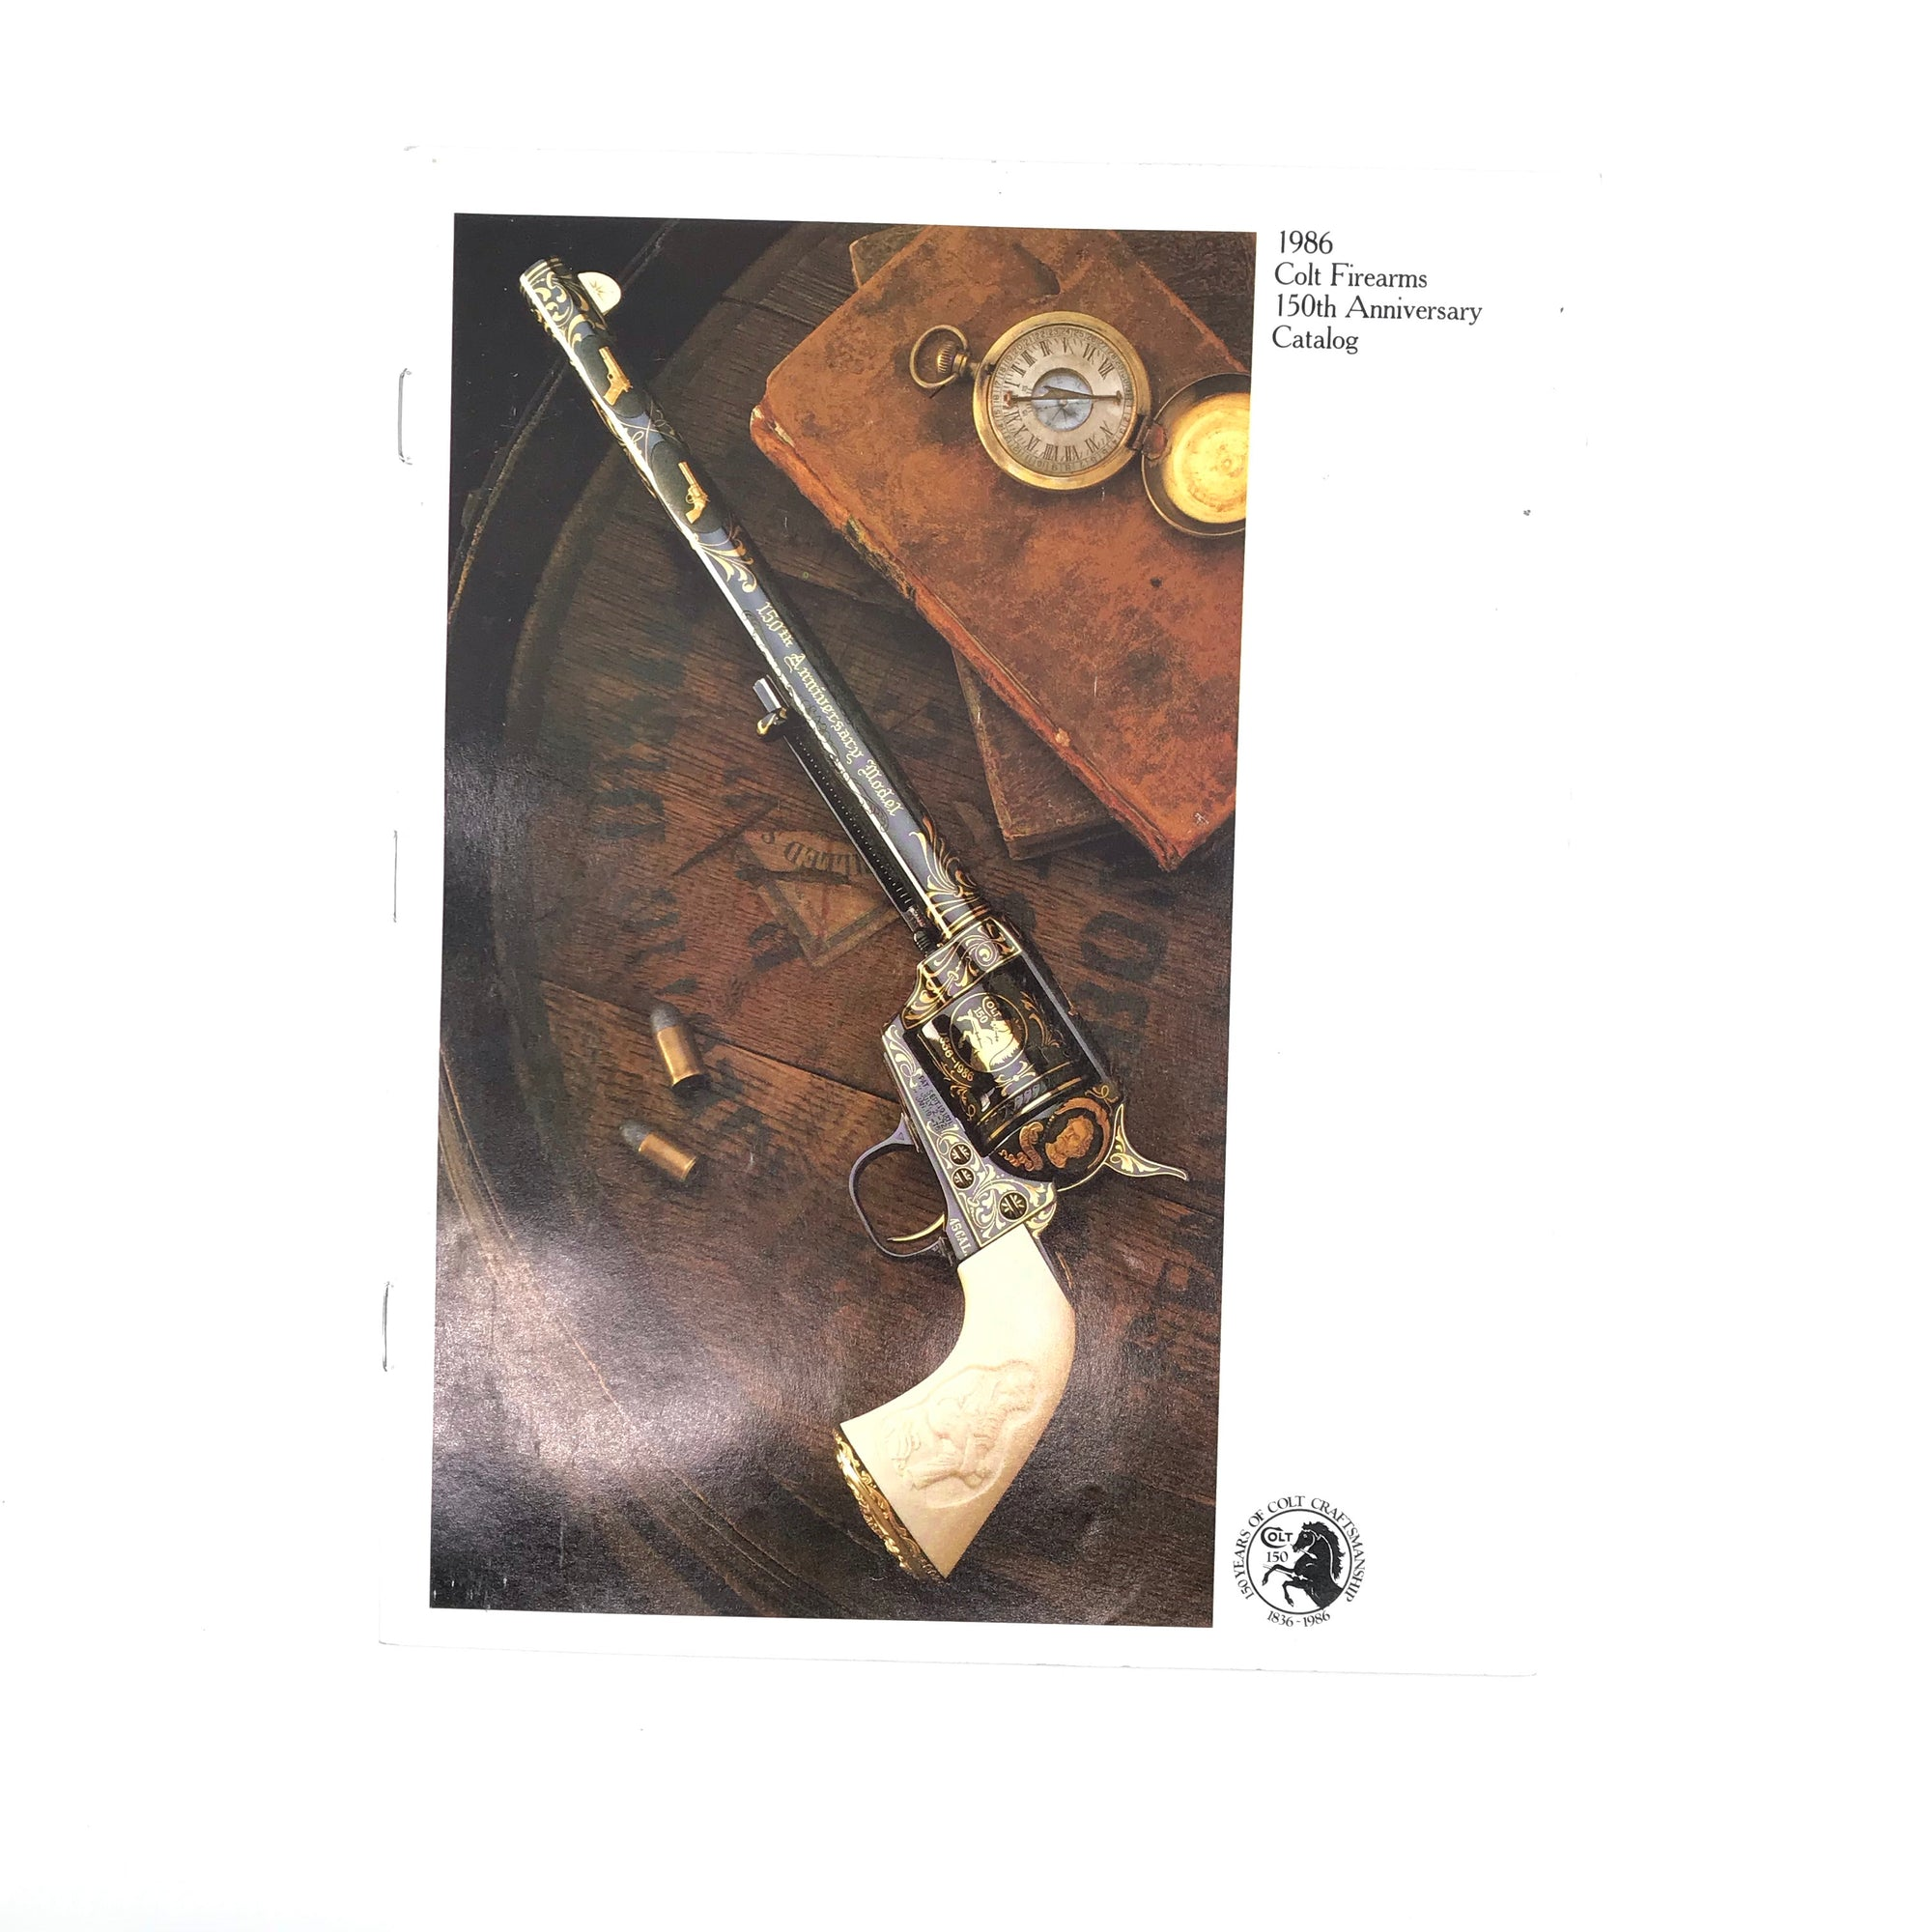 1986 Colt Firearms 150th Anniversary Catalogue